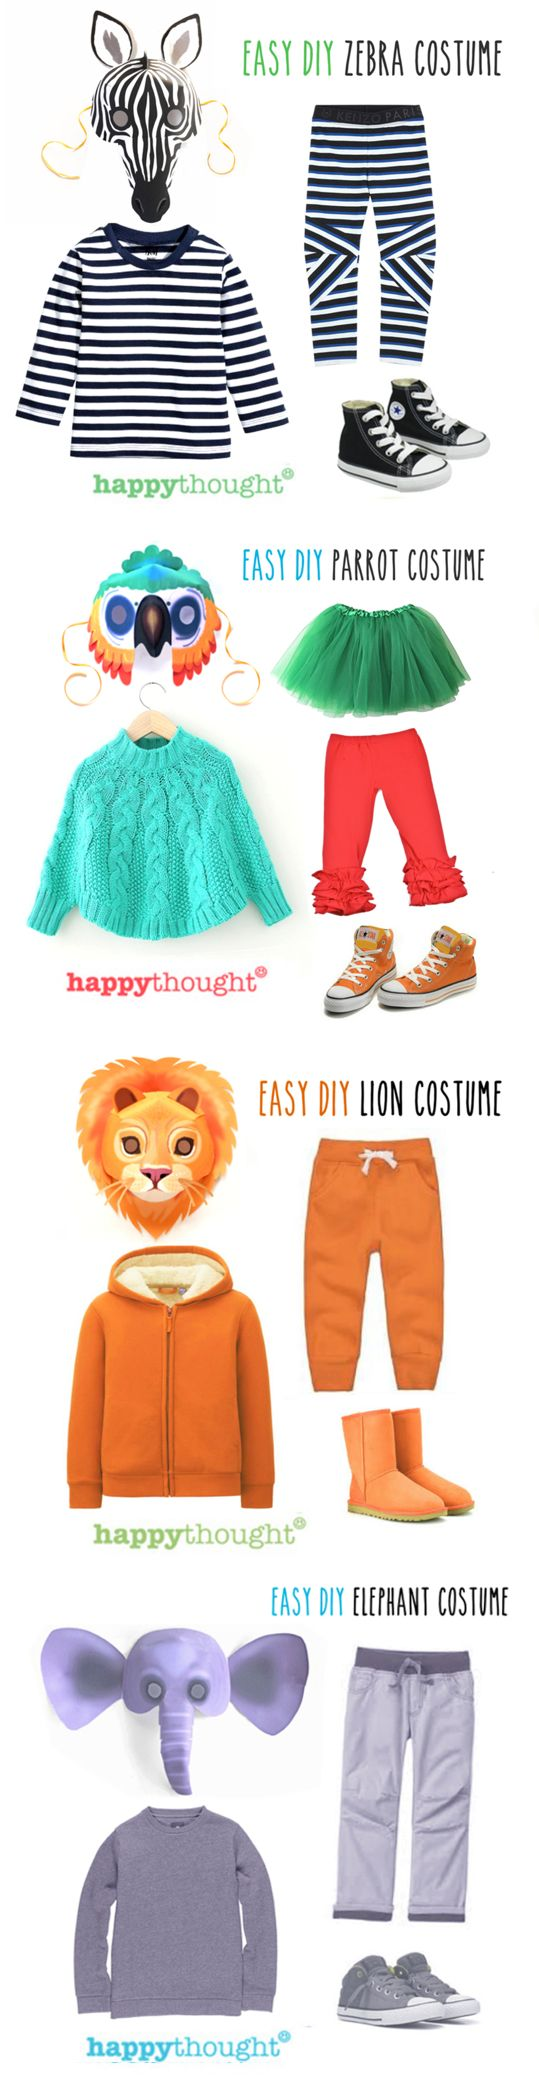 Easy and fun DIY wild animal costume ideas using Happythought printable animal mask templates! Put together a Elephant, Lion, Parrot or Zebra costume in minutes! Printable mask patterns ready for instant download at https://happythought.co.uk/product/printable-wild-animal-masks